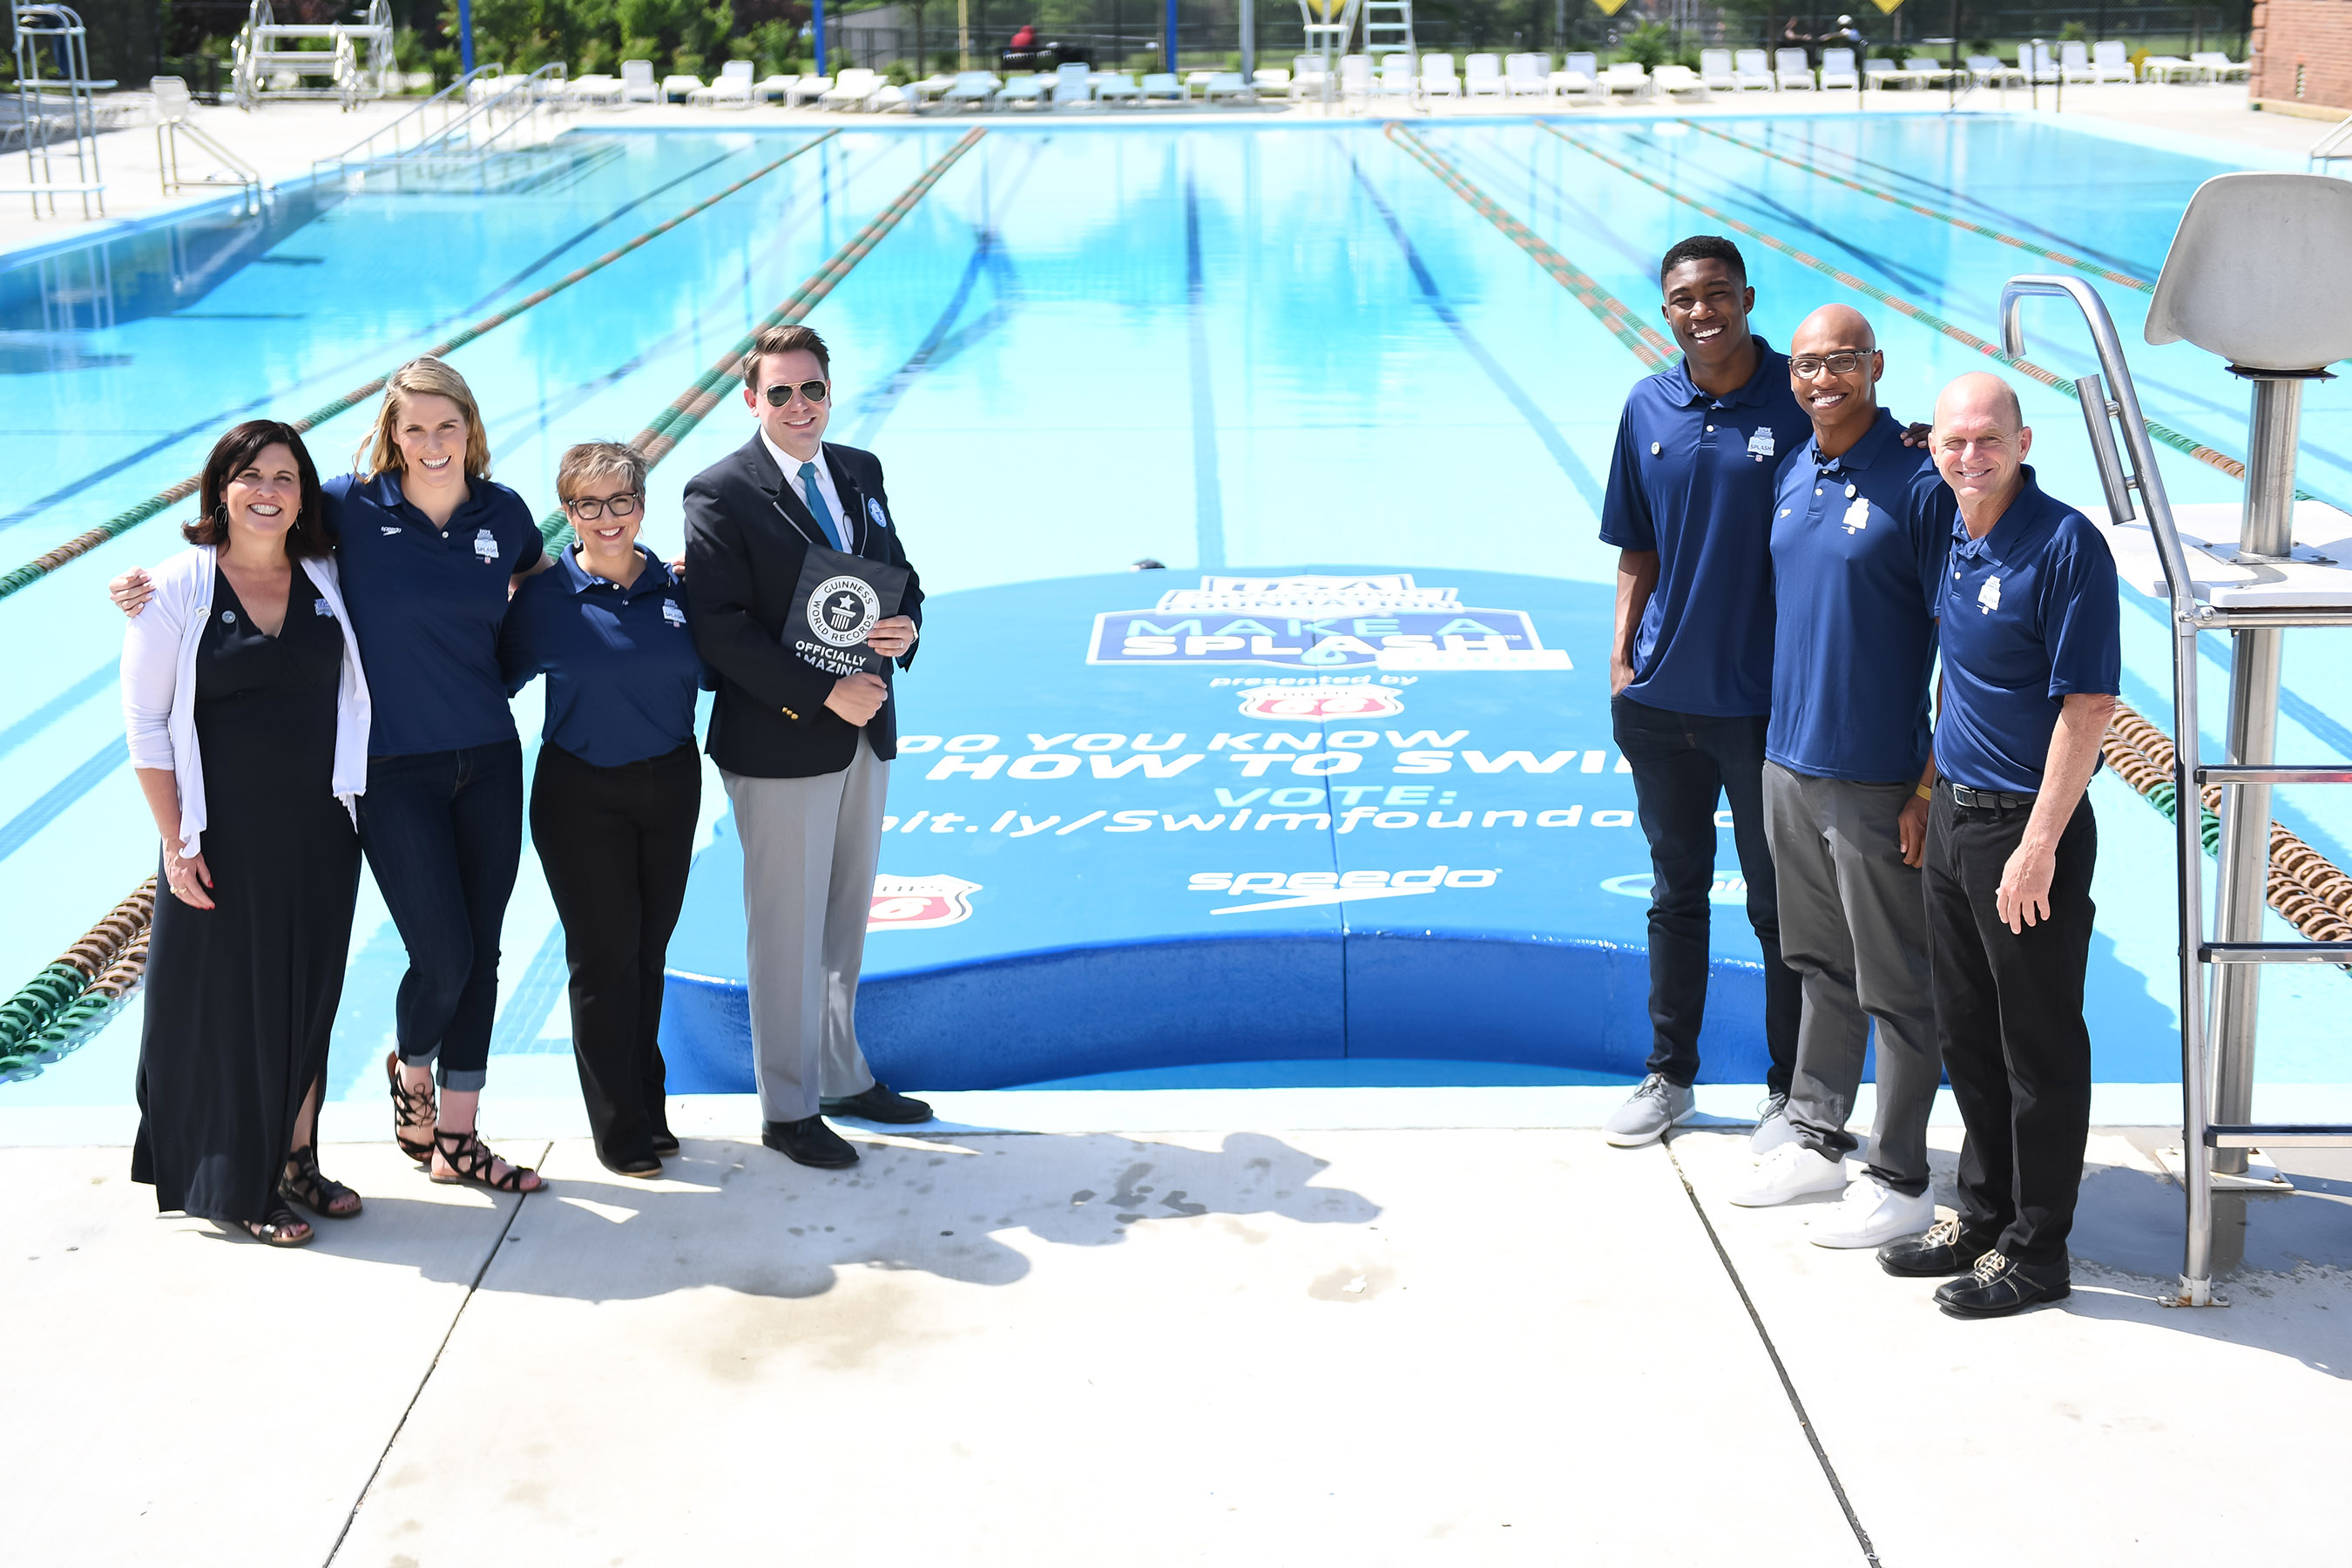 PHOTO CREDIT: © Mike Lewis / USA Swimming Foundation - USA Swimming Foundation Executive Director Debbie Hesse, USA Swimming Foundation ambassador Missy Franklin, Phillips 66 Manager Tami Talbert Walker, adjudicator Michael Empric, World Junior Champion swimmer Reece Whitley, Olympians Cullen Jones and Rowdy Gaines flank the GUINNESS WORLD RECORDS® Largest Kickboard during the USA Swimming Foundation's Make a Splash tour presented by Phillips 66.